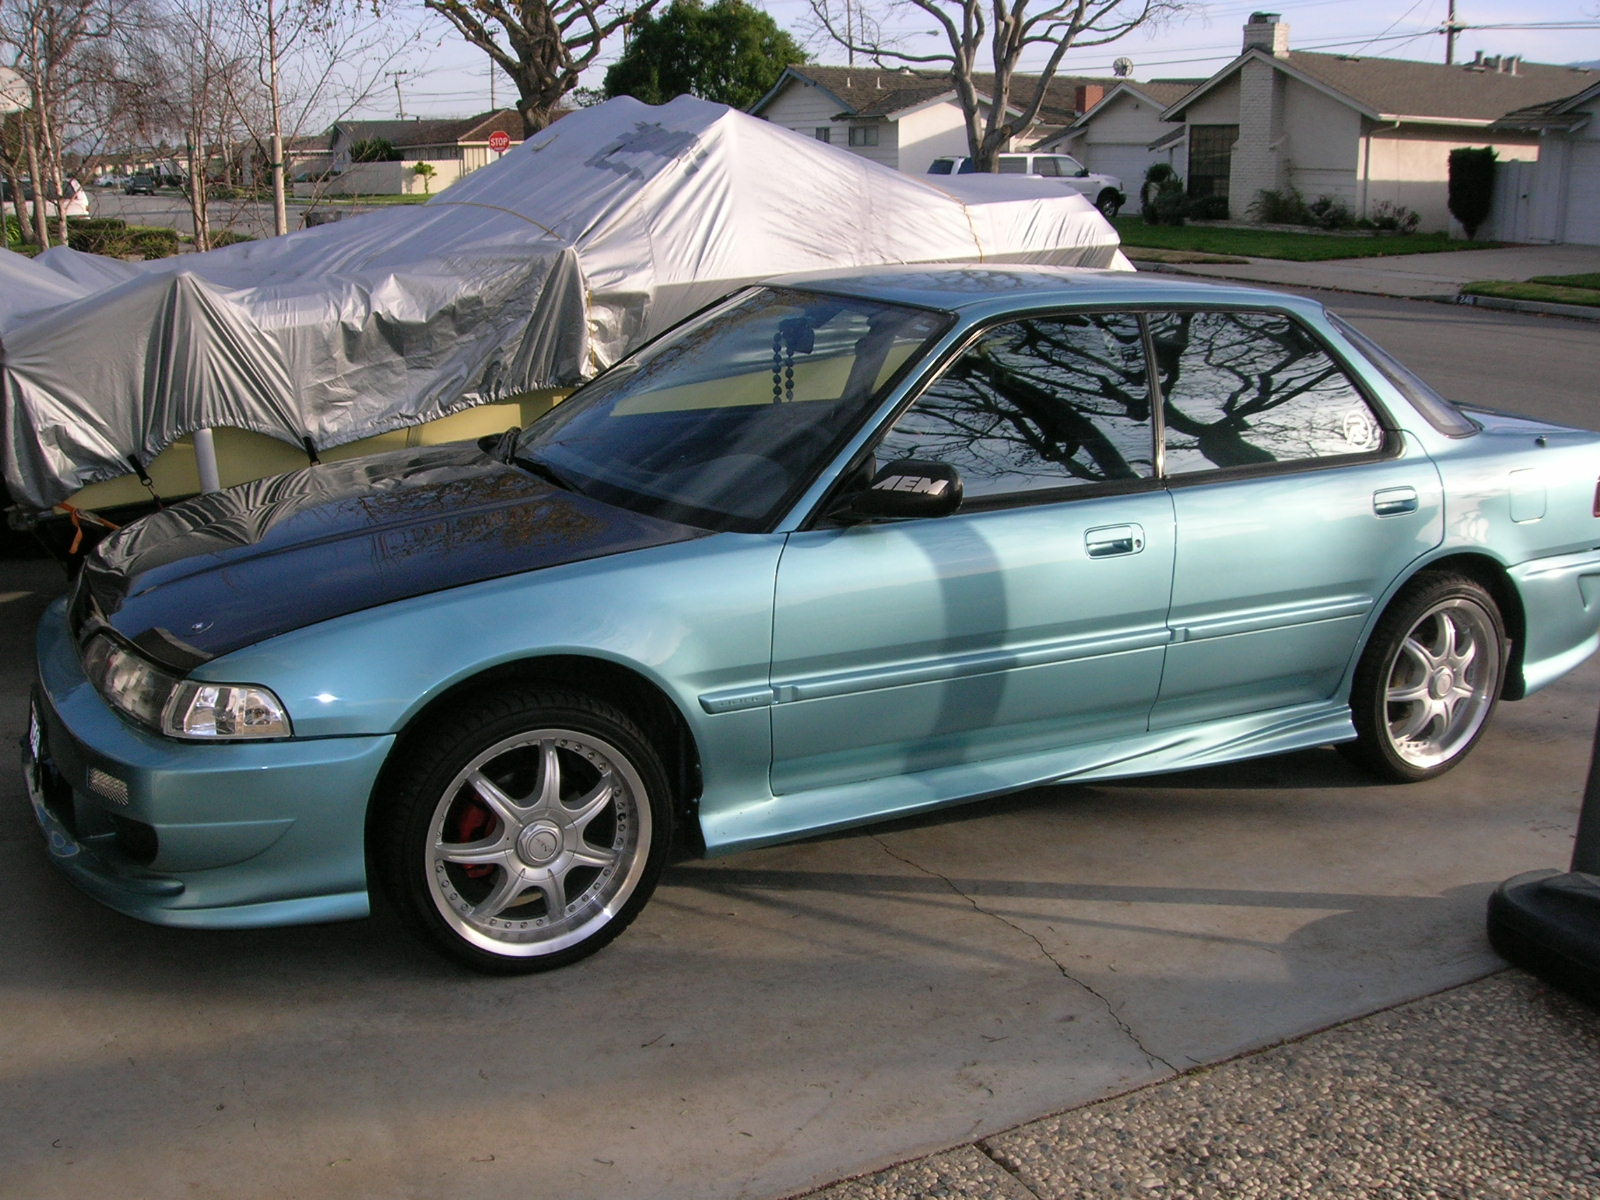 All Cars In Oceans Eleven 2001 additionally Swap Guide furthermore Hyundai Sonata 2000 2 3 Engine Transmission also 89 Civic Lx Turn Signals Malfunctioning But Hazards Work 3142380 further Special Editions. on 1993 acura integra